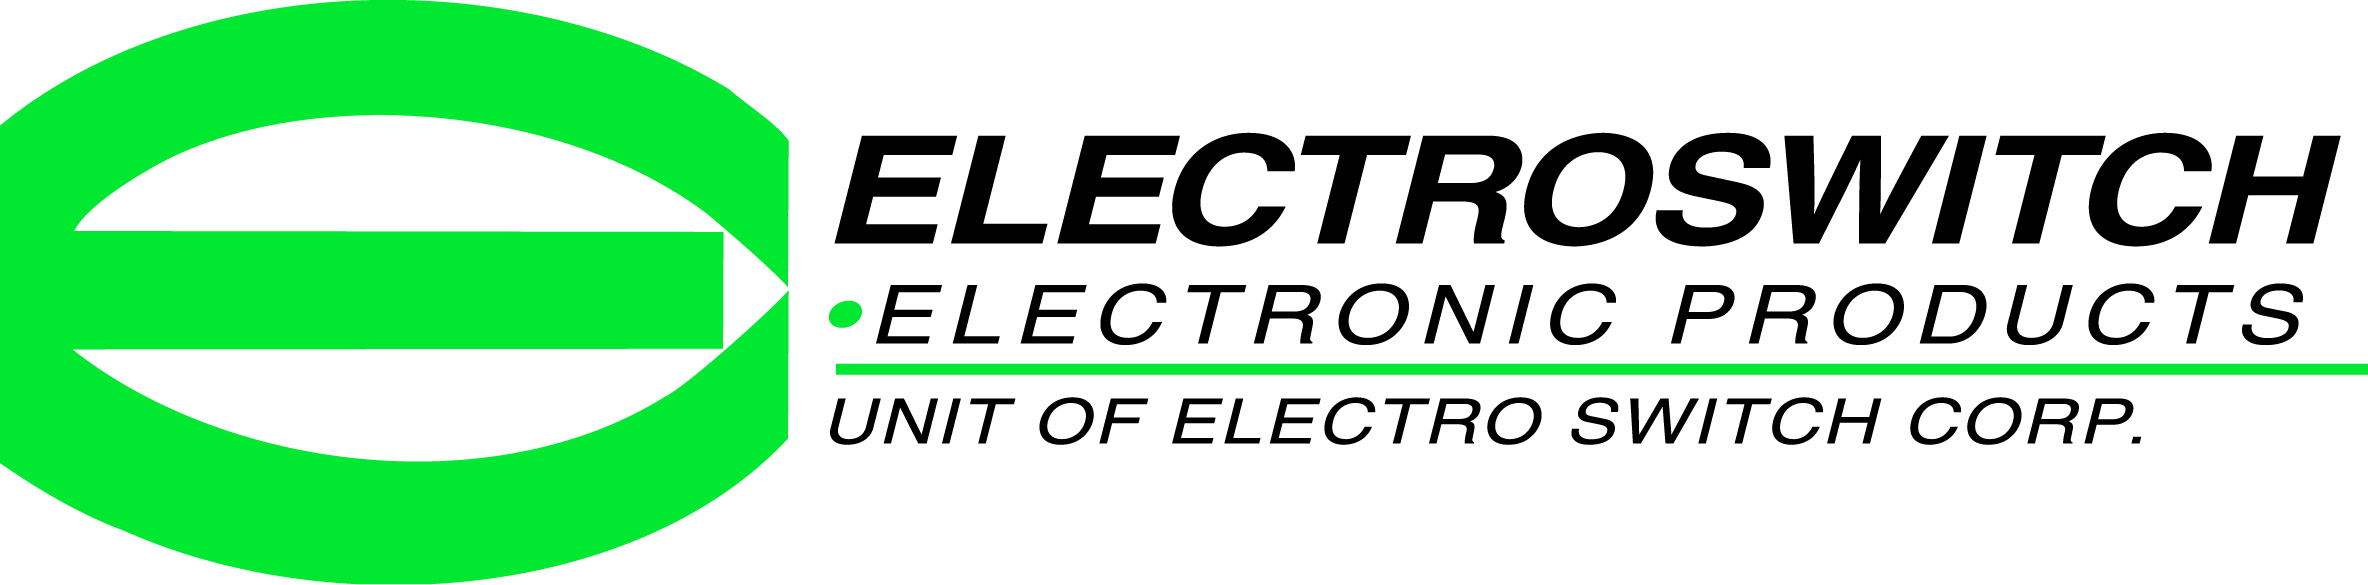 Electroswitch high res color logo with words